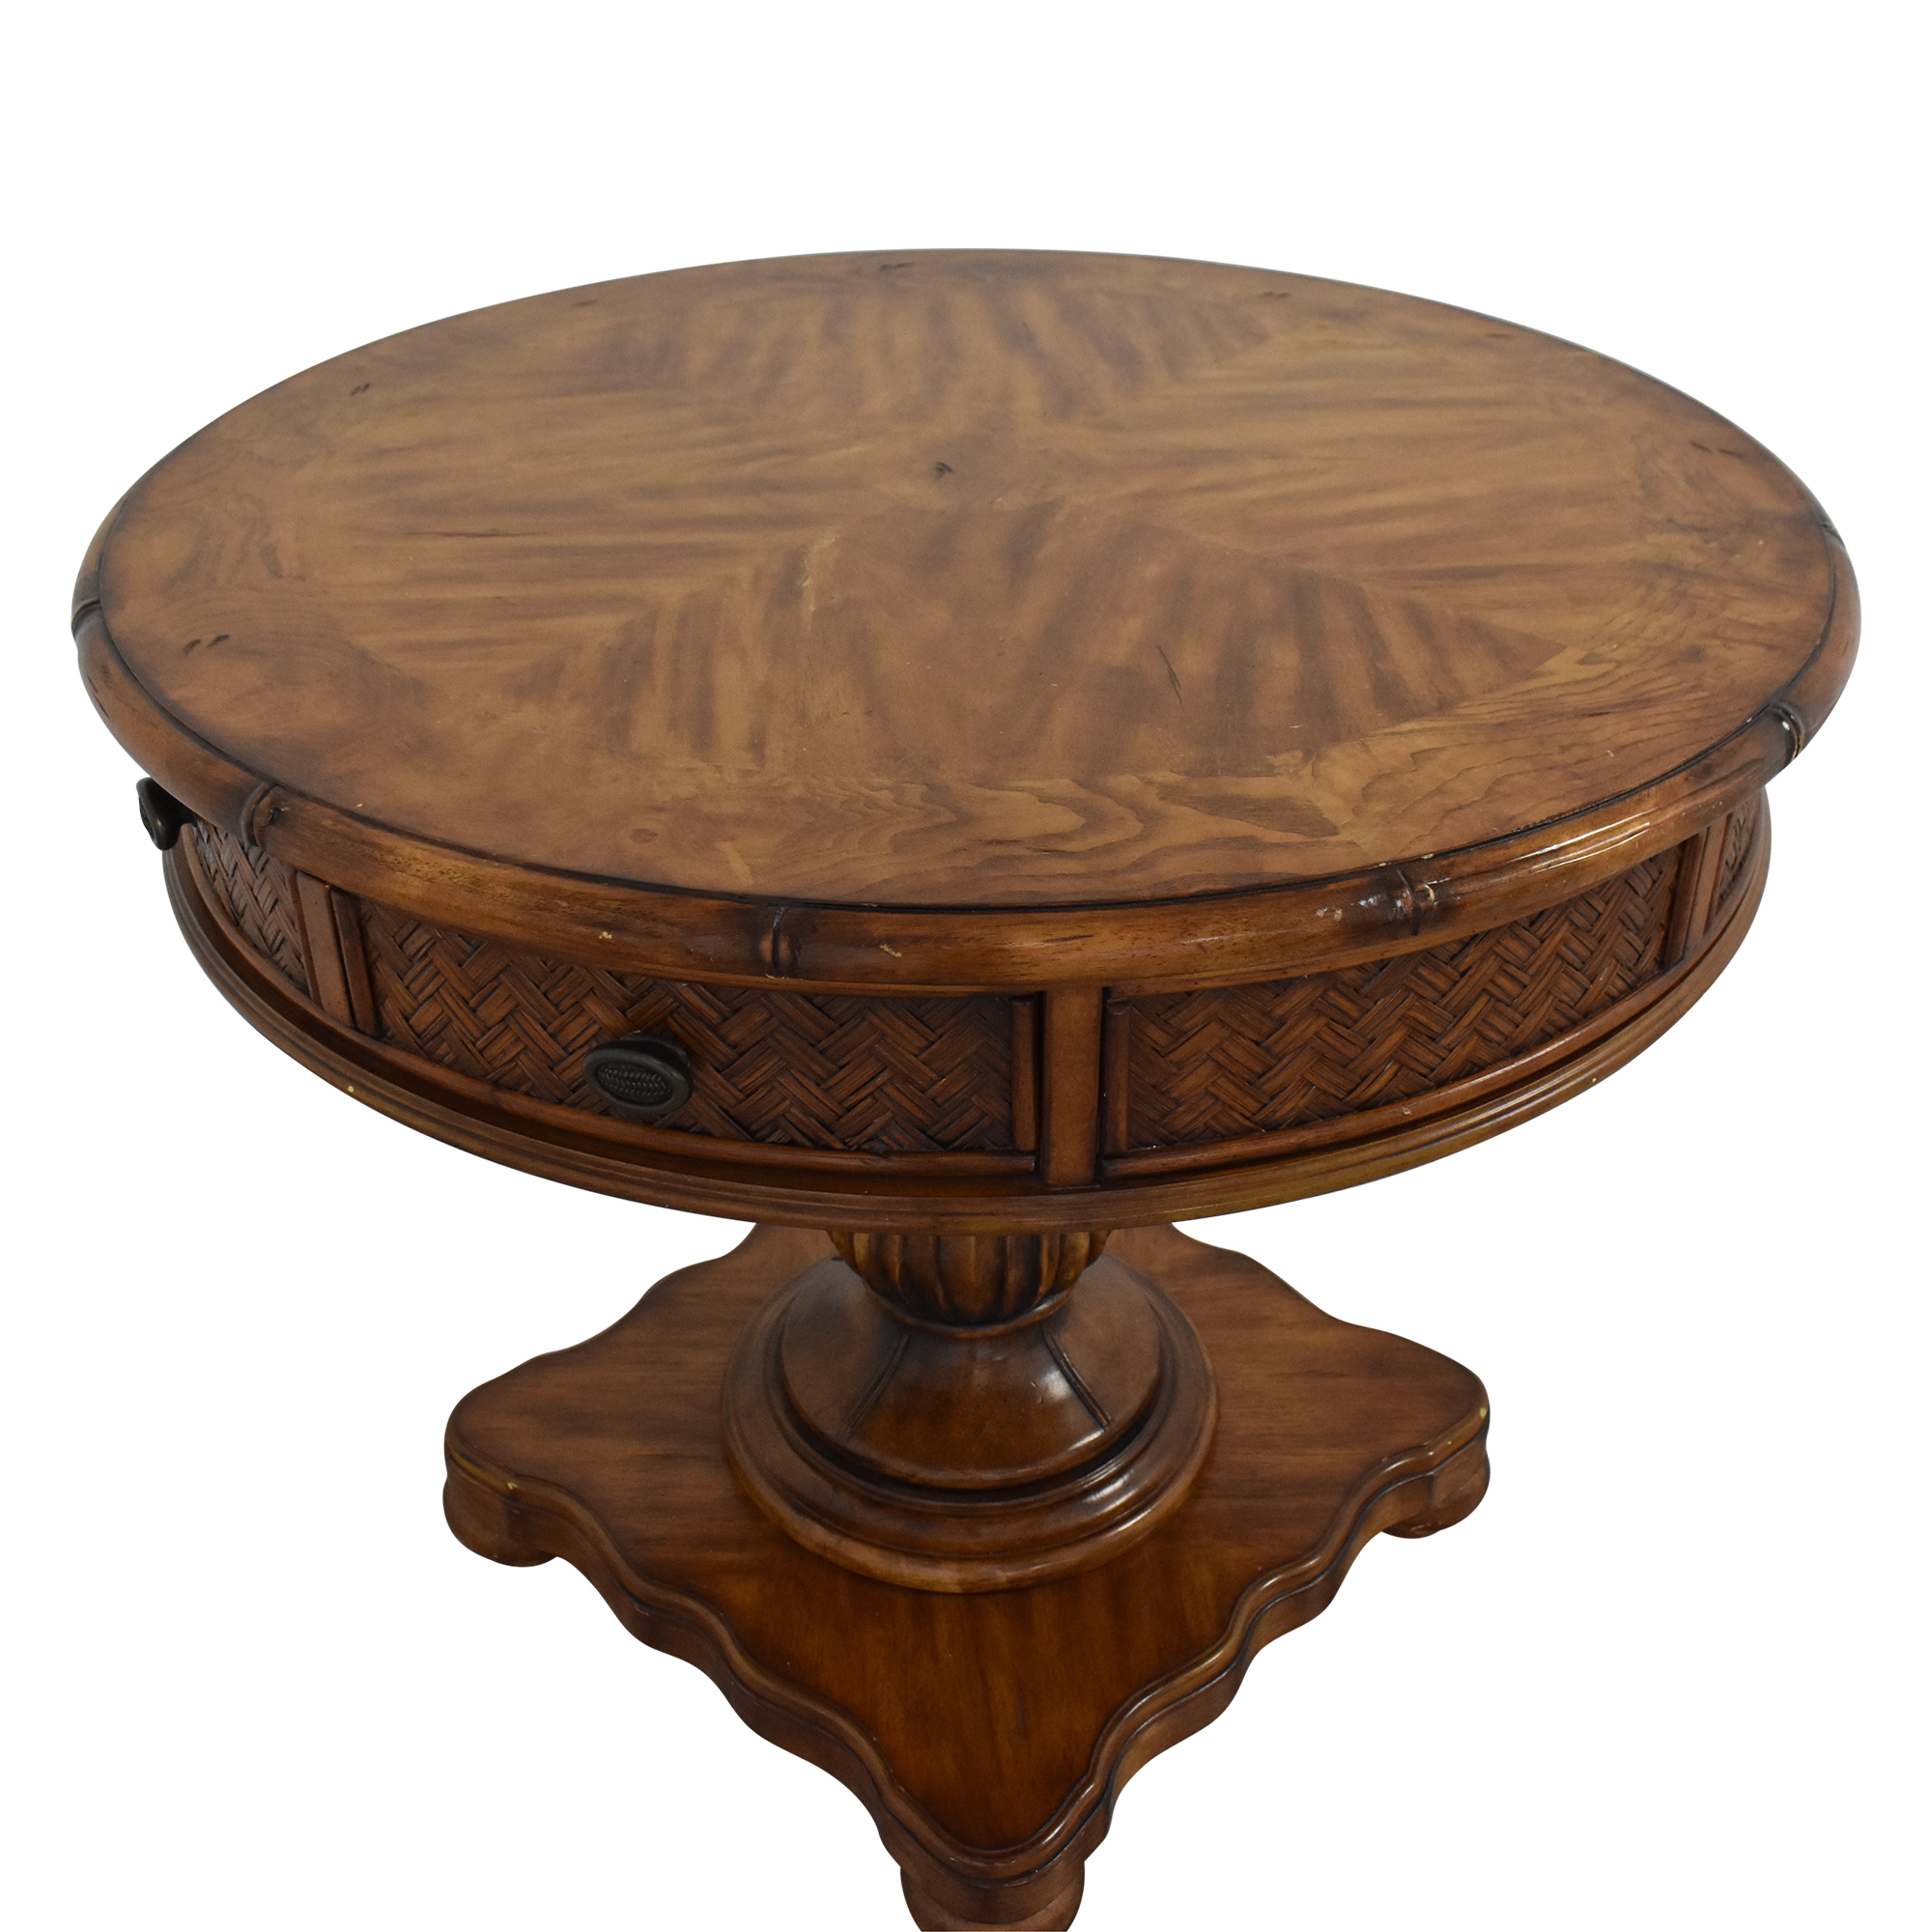 Schnadig Schnadig Round Accent Table nj